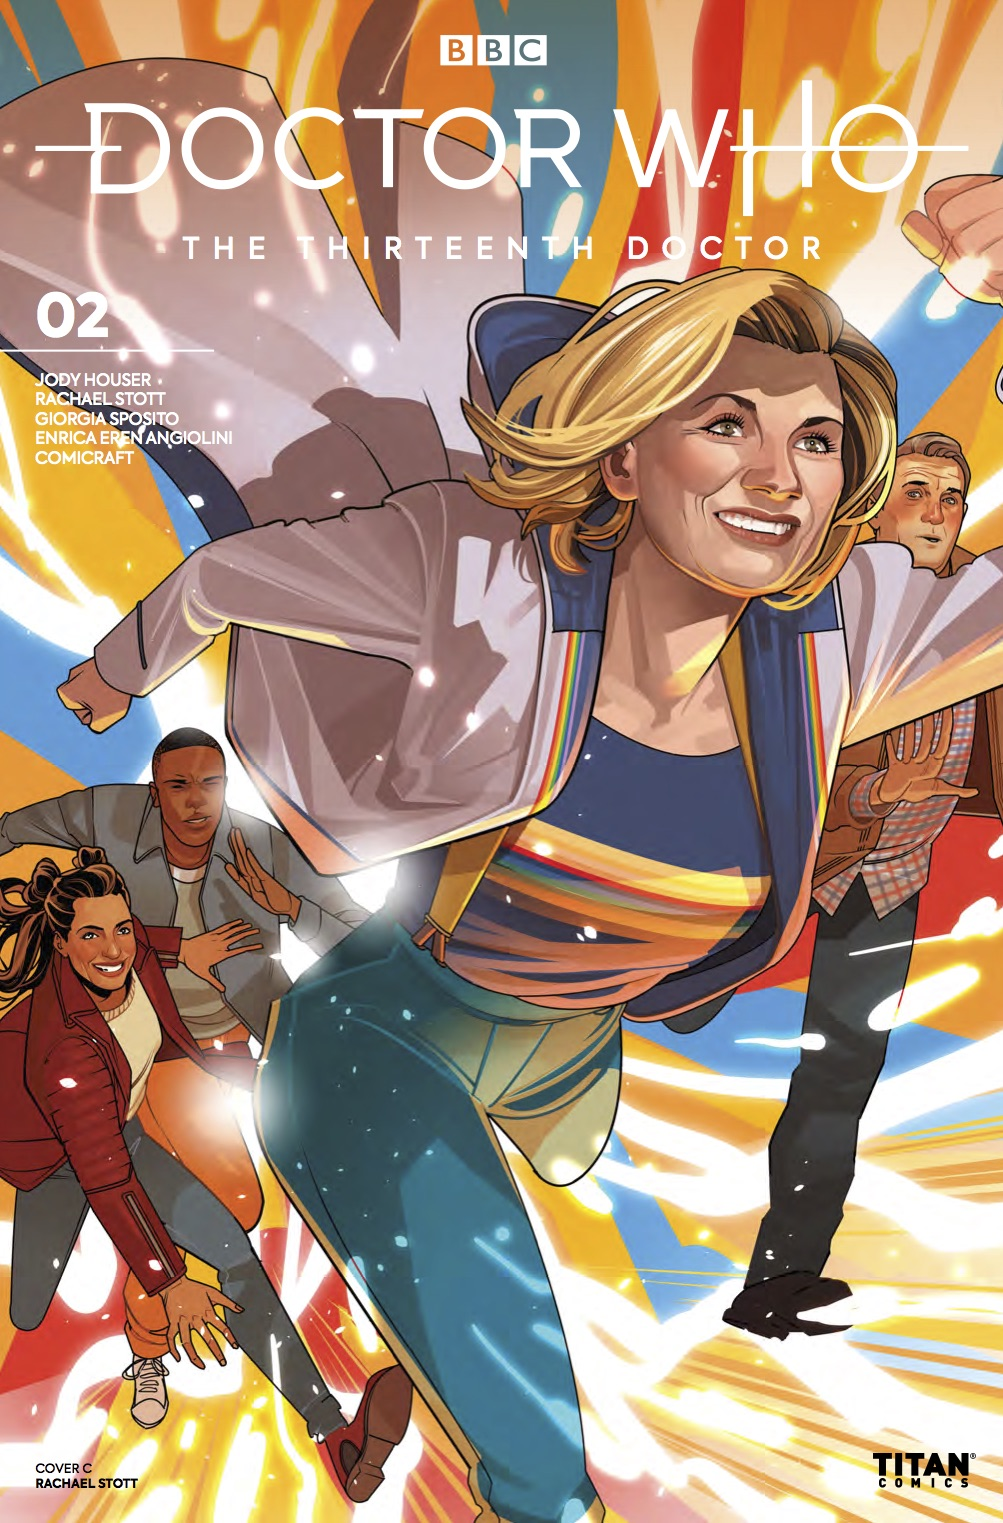 Thirteenth Doctor #3 - Cover C (Credit: Titan )